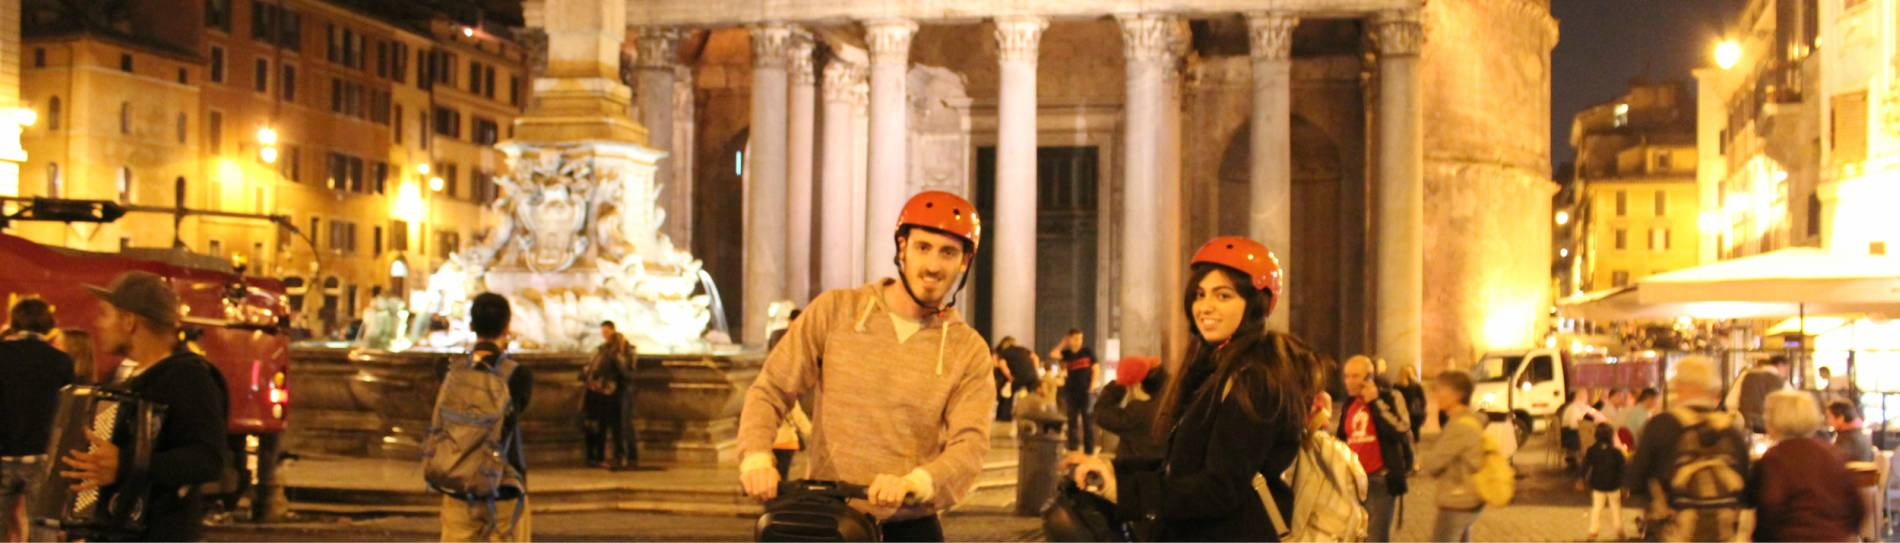 SEGWAY TOUR BY NIGHT ROME